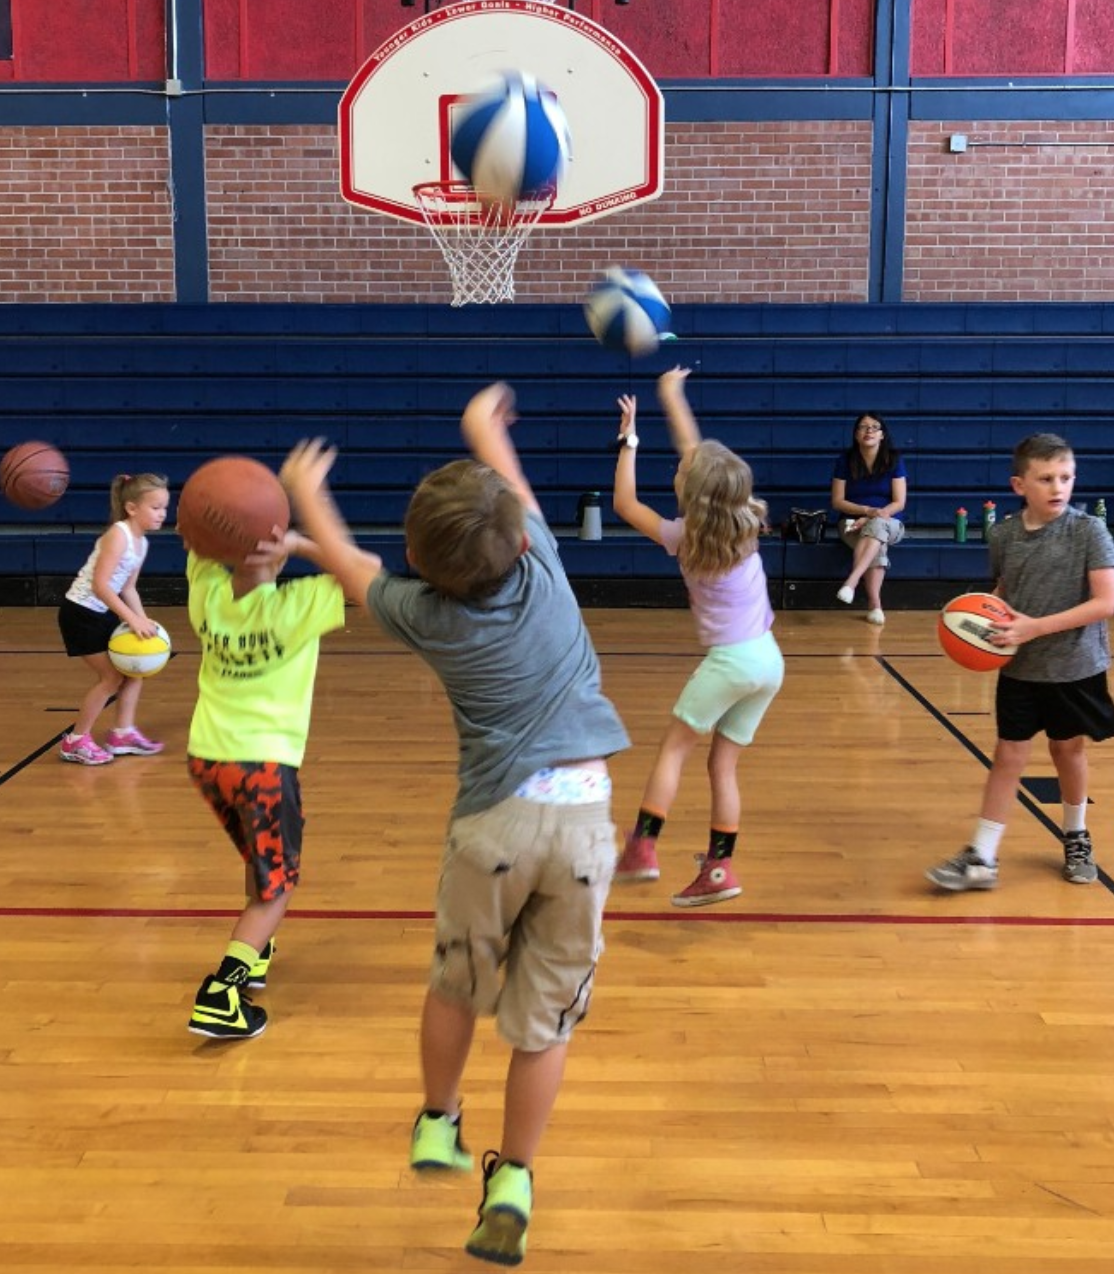 Sports Camps for kids are new this summer.